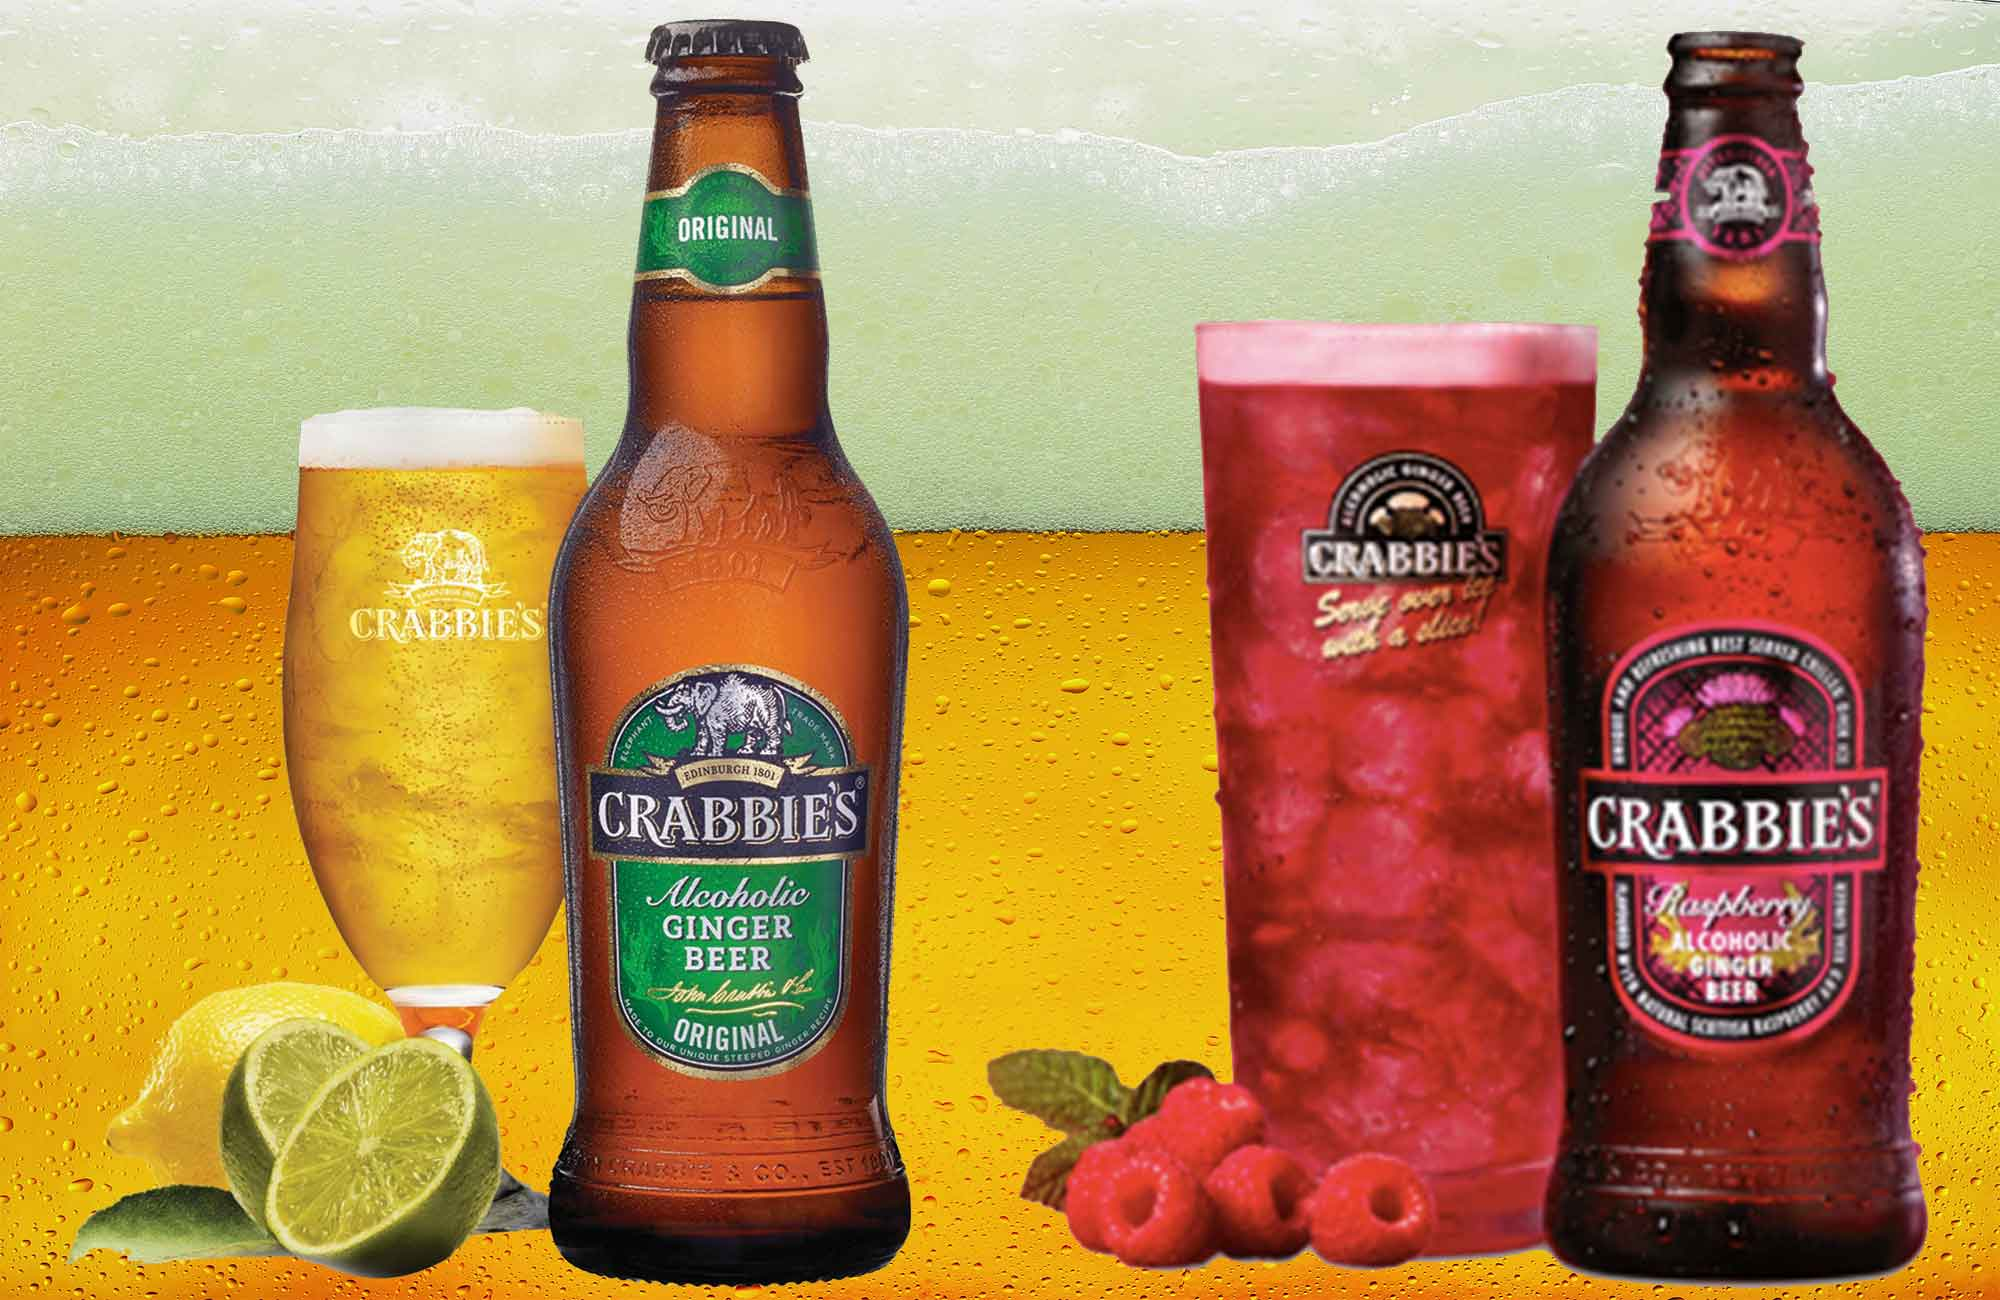 Crabbies Alcoholic Ginger Beer